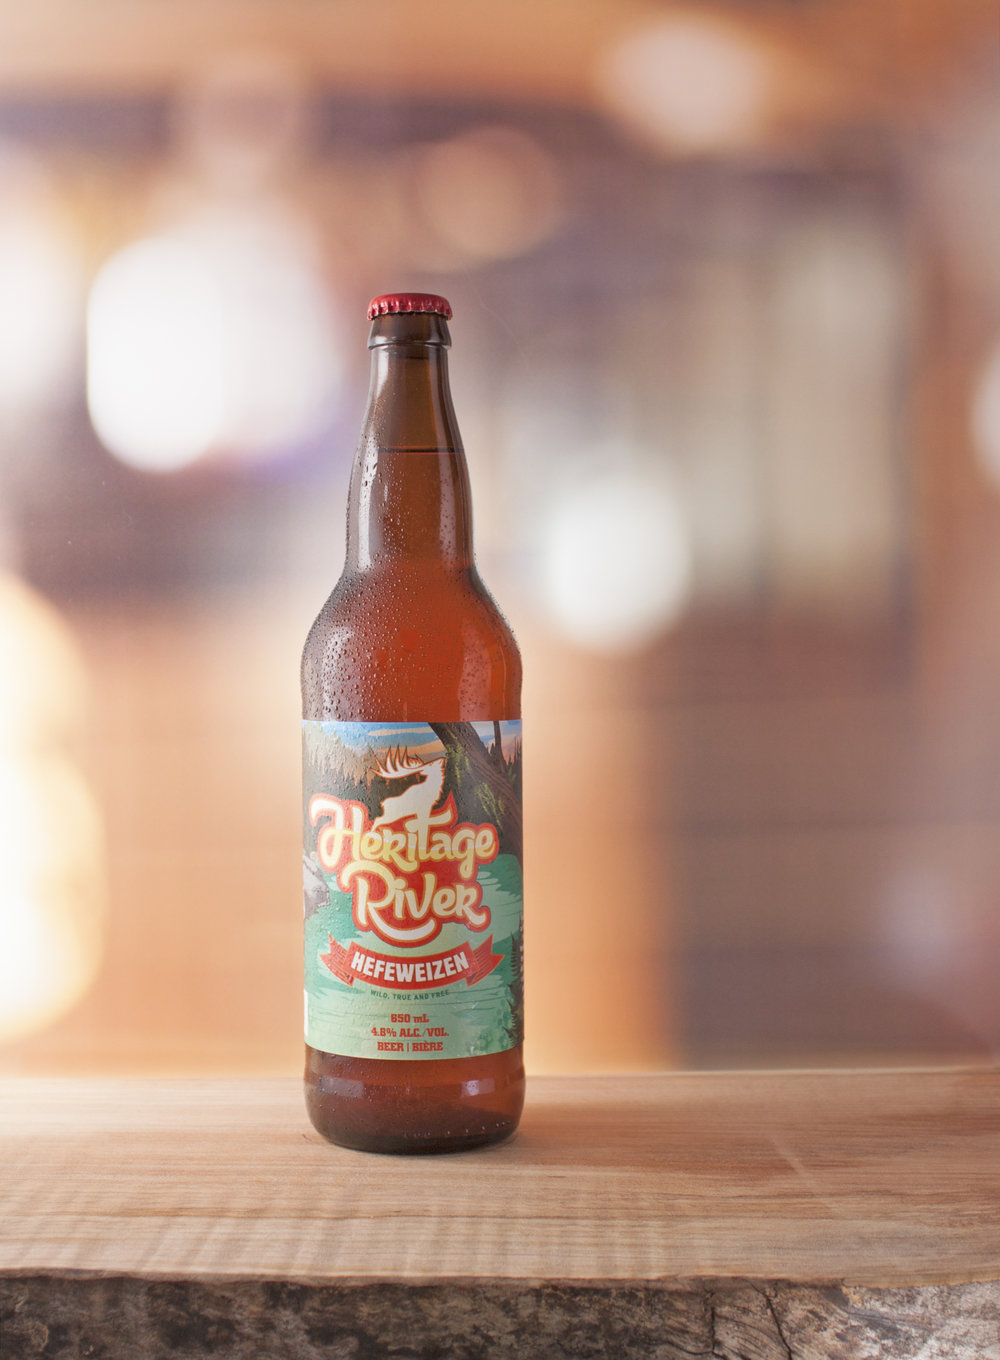 Heritage River Hefeweizen: Hazy, sunset orange  |  IBU's: 33  |  ALC: 5.1%